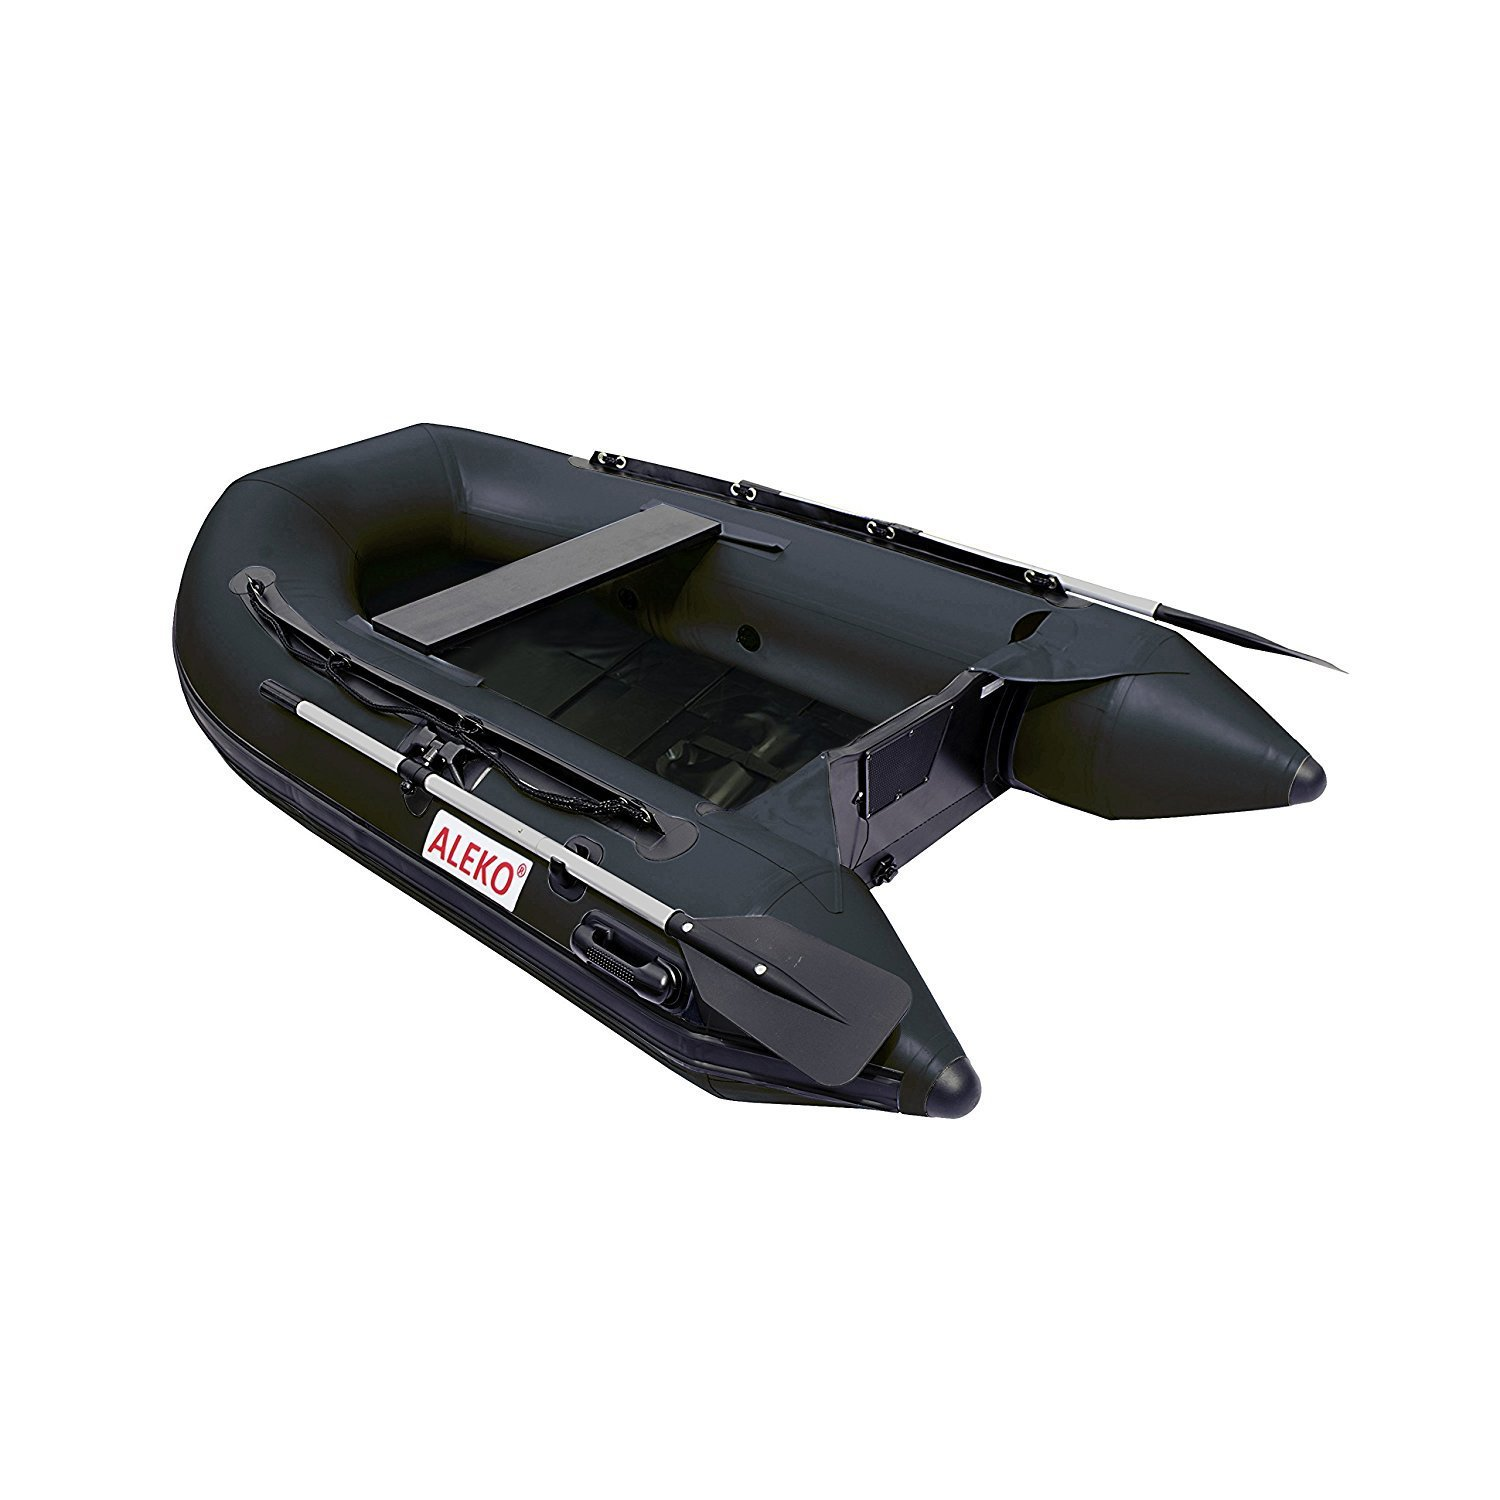 BTSDSL250BK 8.5 Foot Inflatable Boat with Pre-Installed Slide Slat